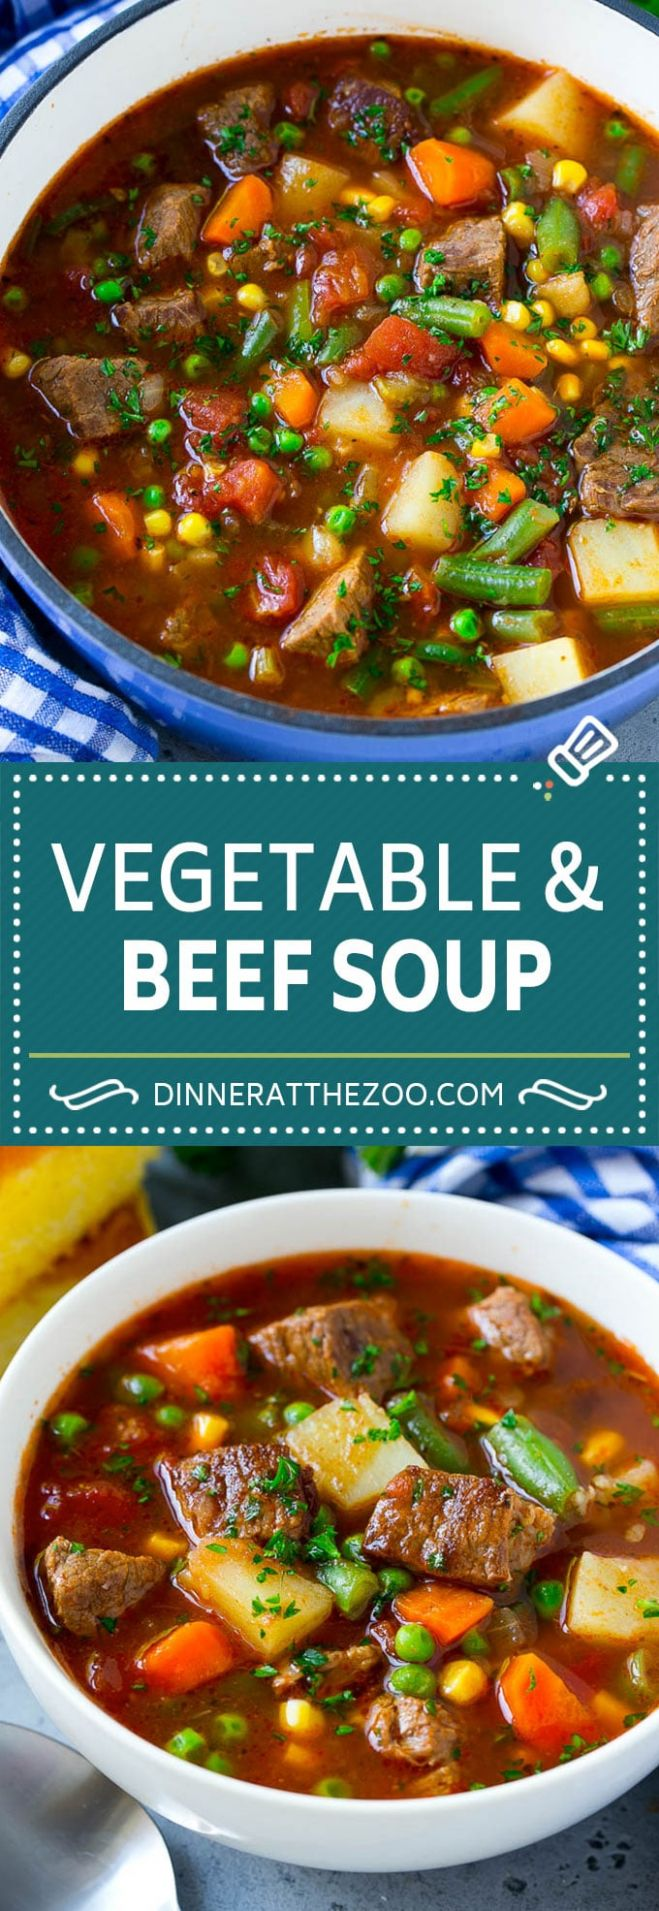 Vegetable Beef Soup - Dinner at the Zoo - Recipes Vegetable Beef Soup